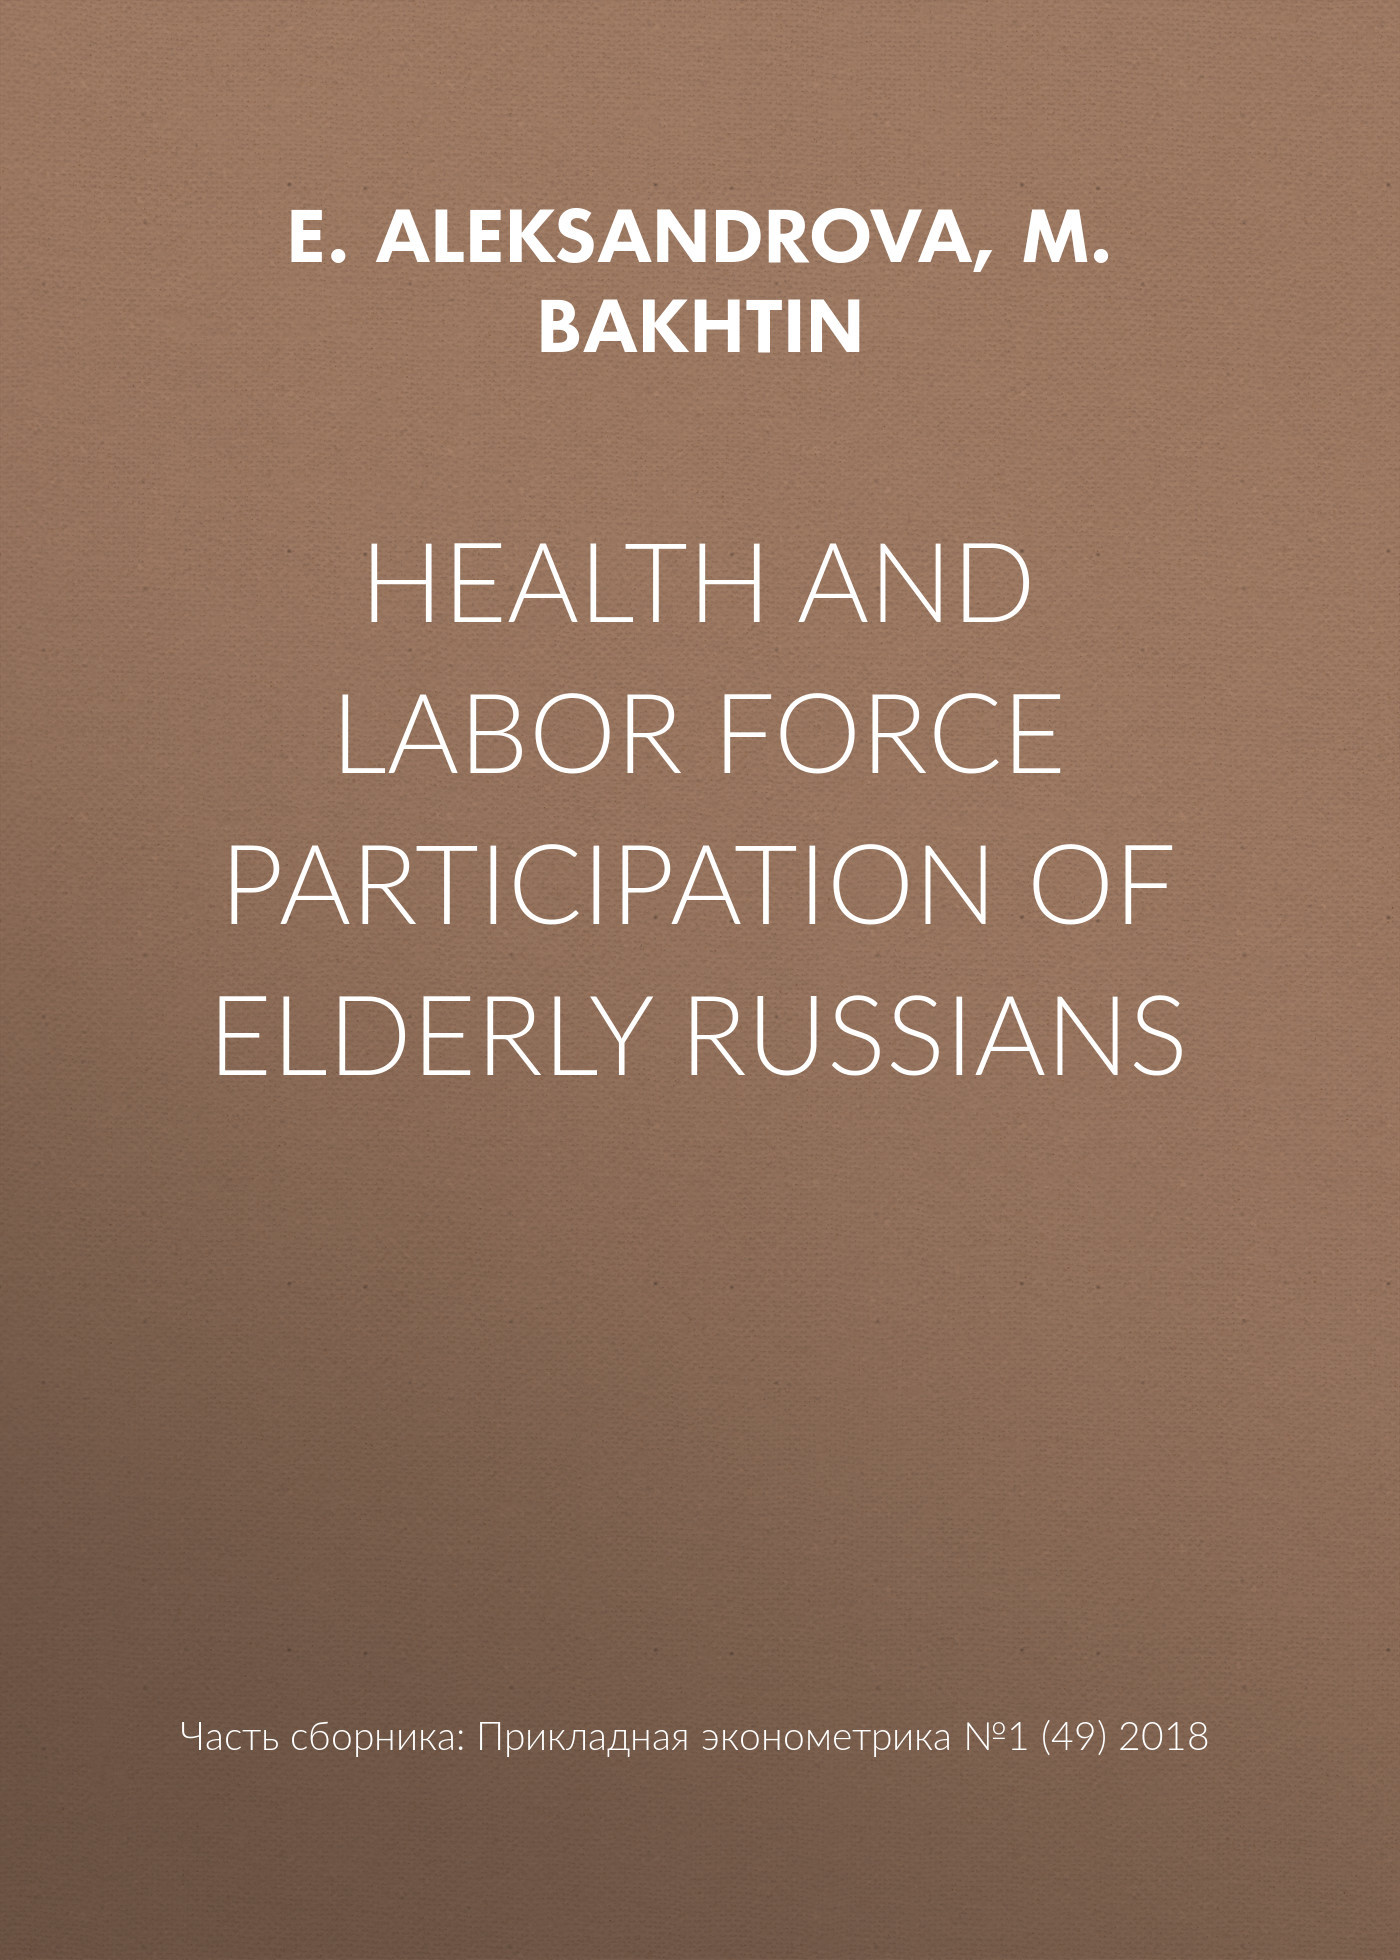 E. Aleksandrova Health and labor force participation of elderly Russians effect of nickel toxicity on liver enzymes of fish